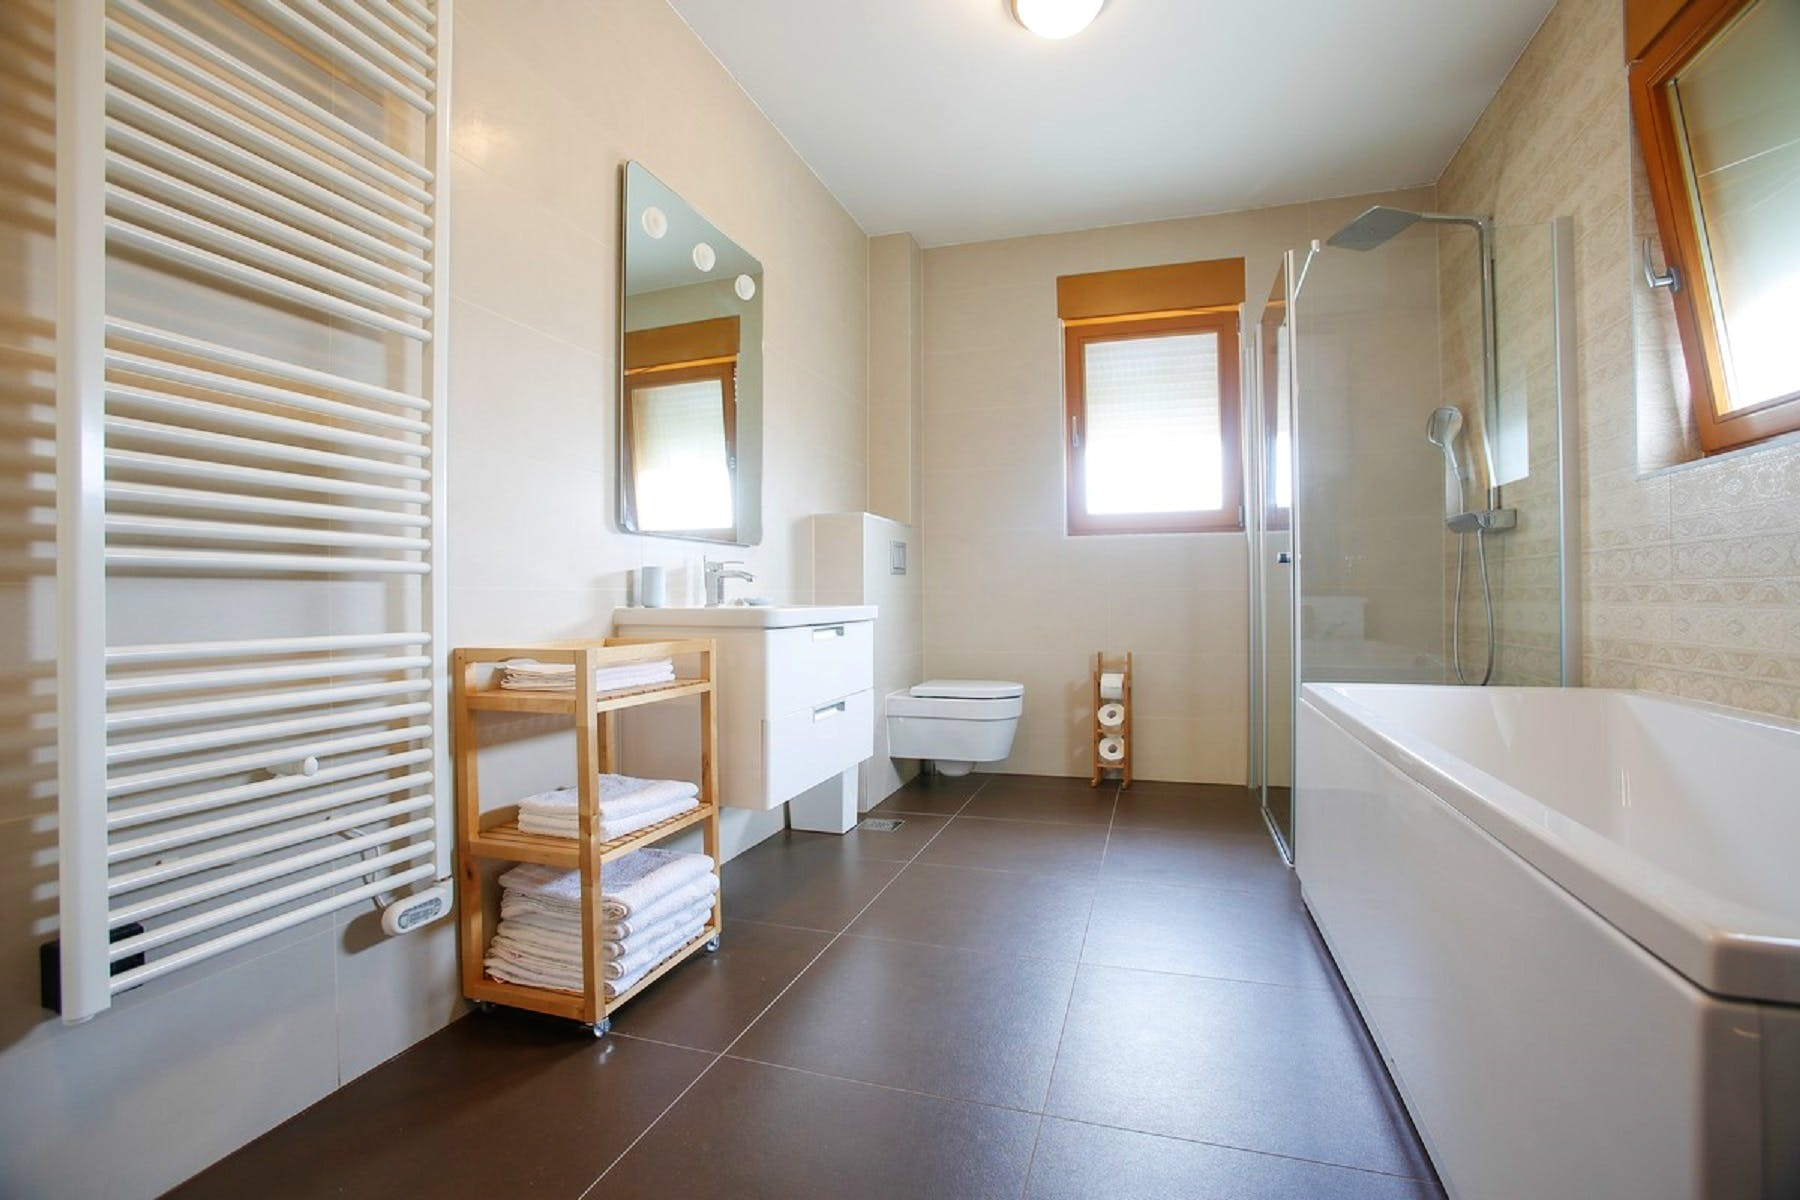 Spacious and fully equipped bathroom